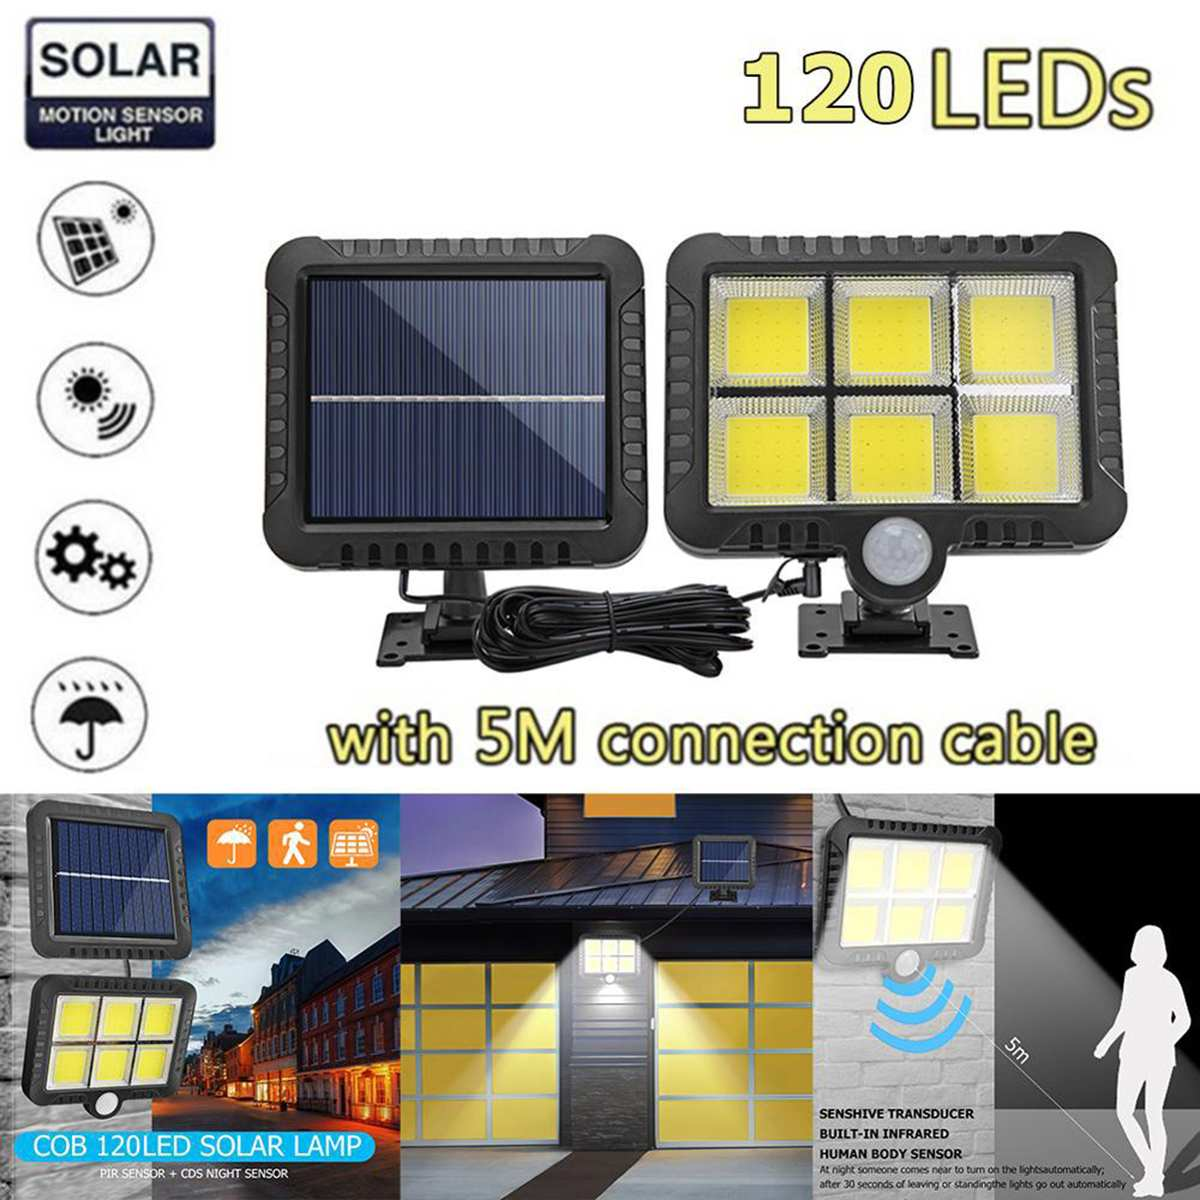 120LED Solar Lamp Motion Sensor Split-body Wall Lamp Light Waterproof Outdoor Path Night Lighting Support Outdoor Night Lighting